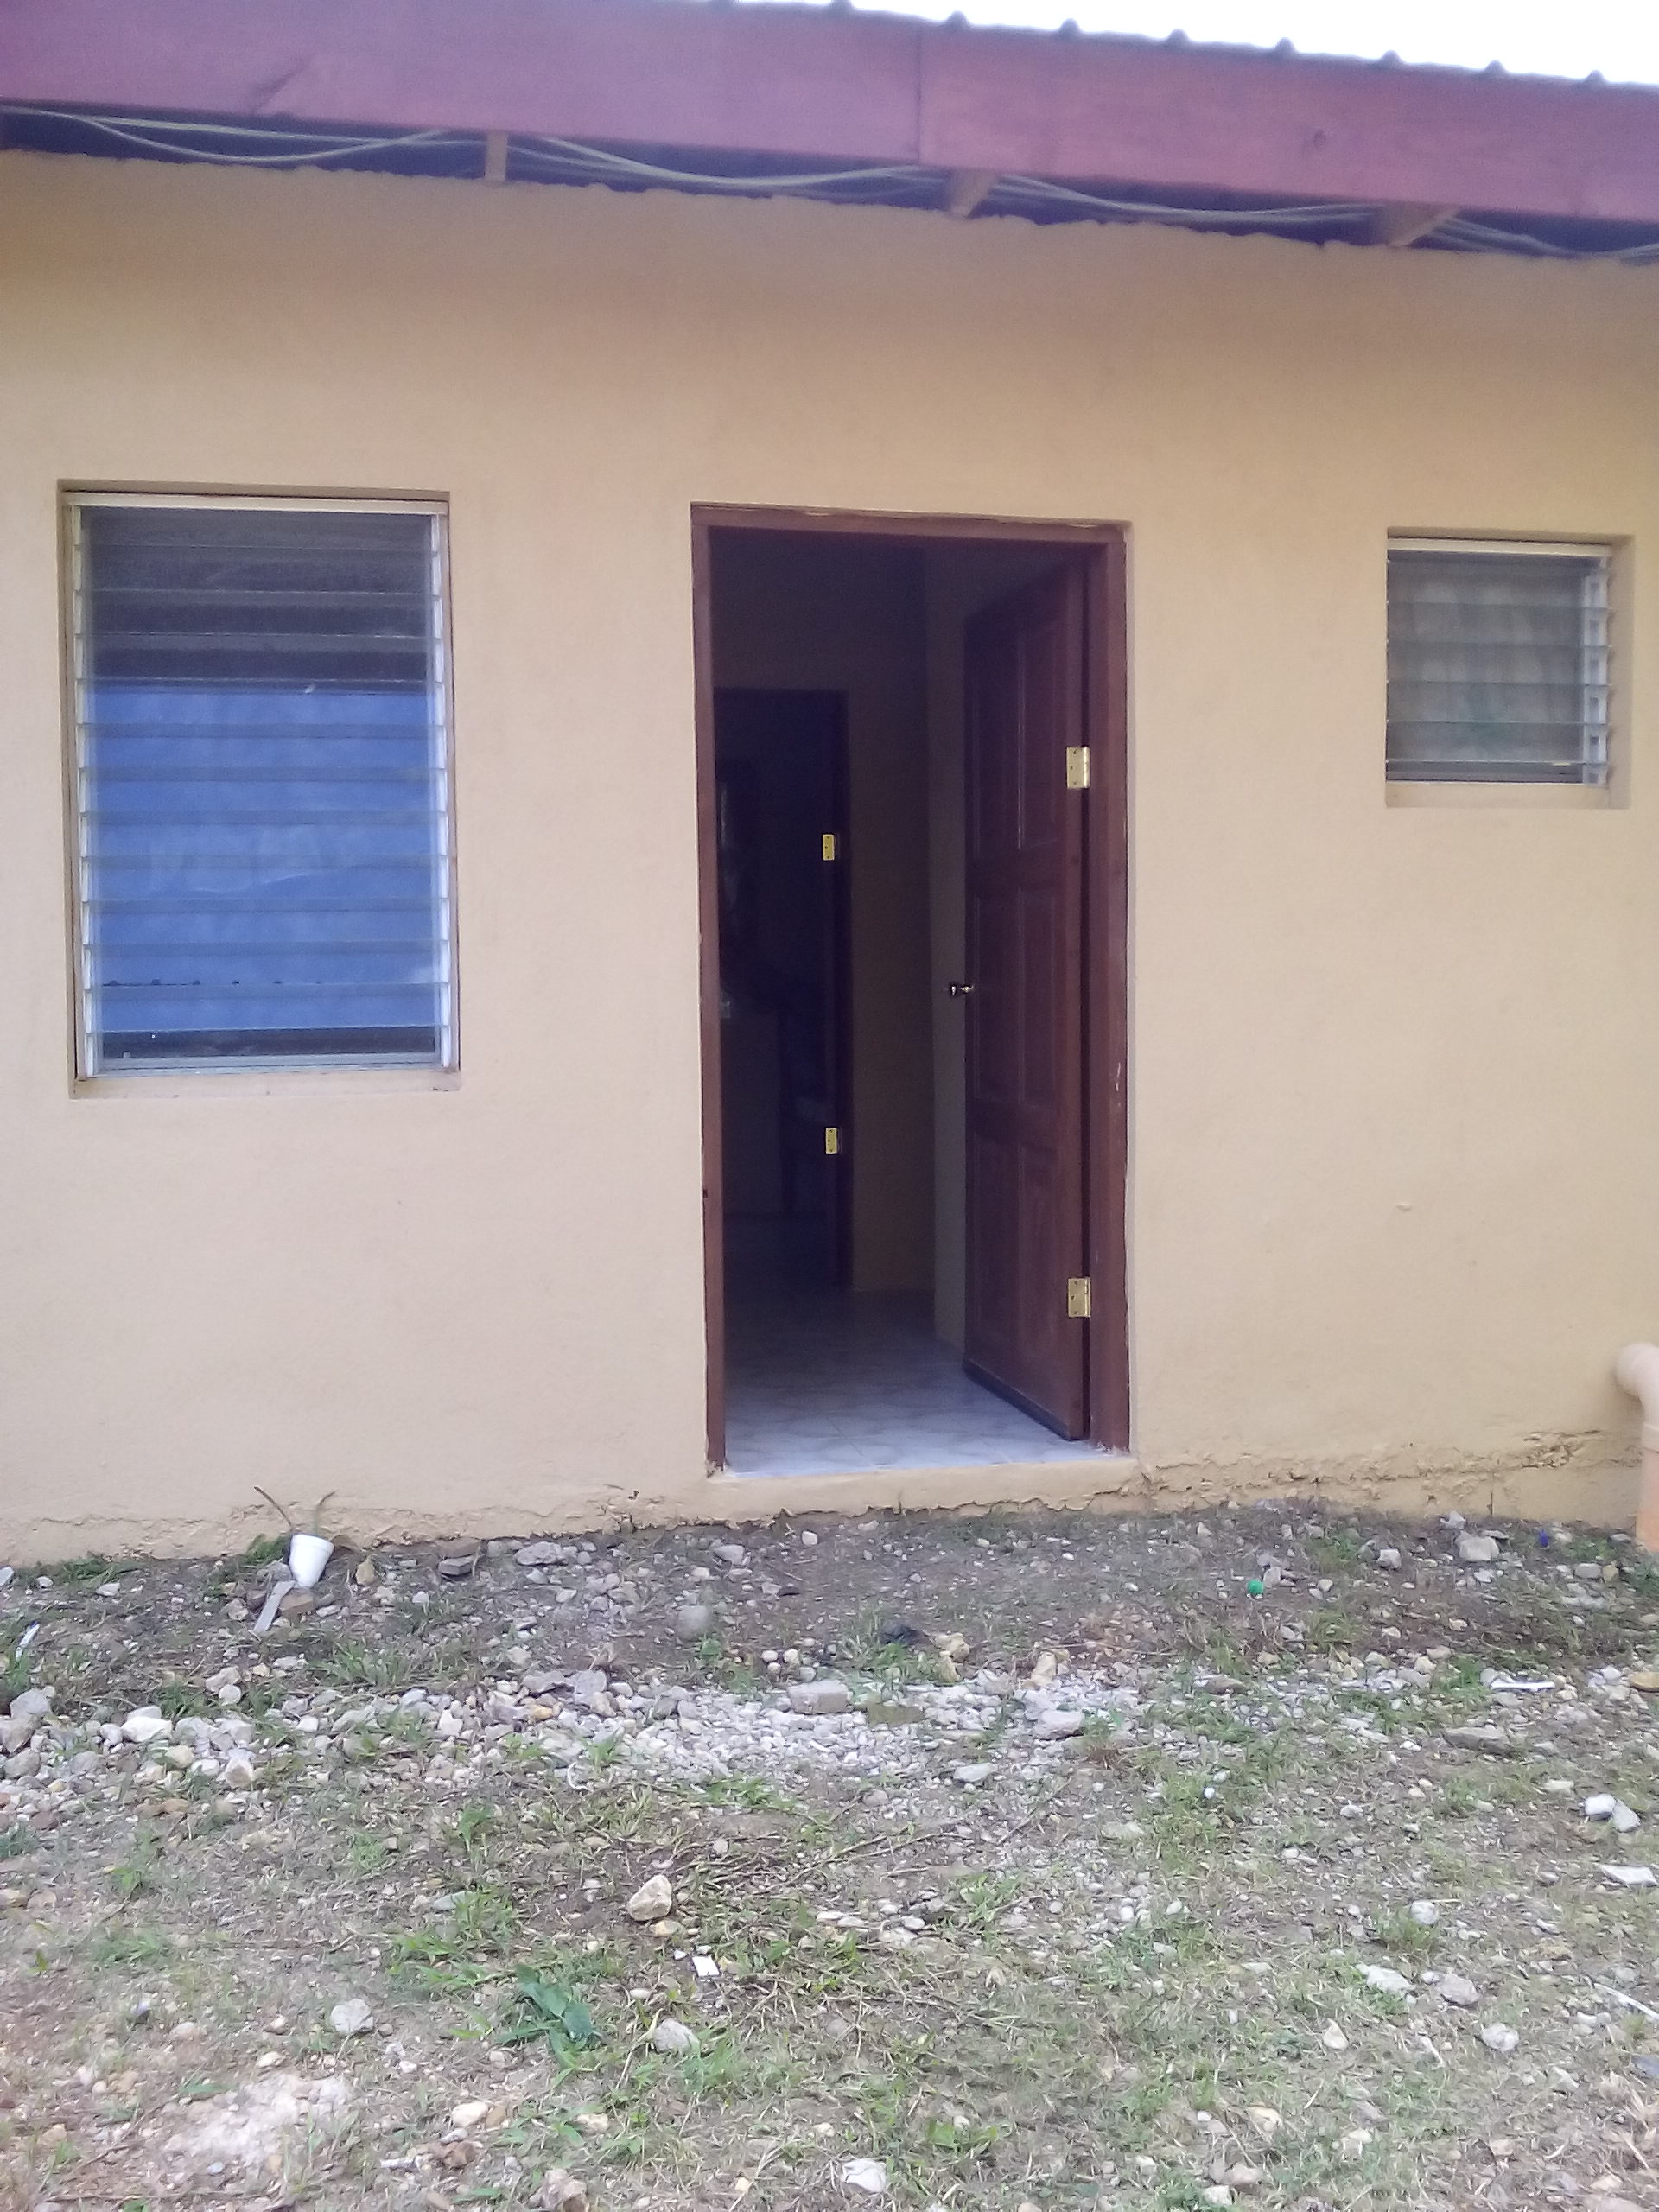 One Bedroom Apartments For Rent In Belmopan $550.00 Monthly